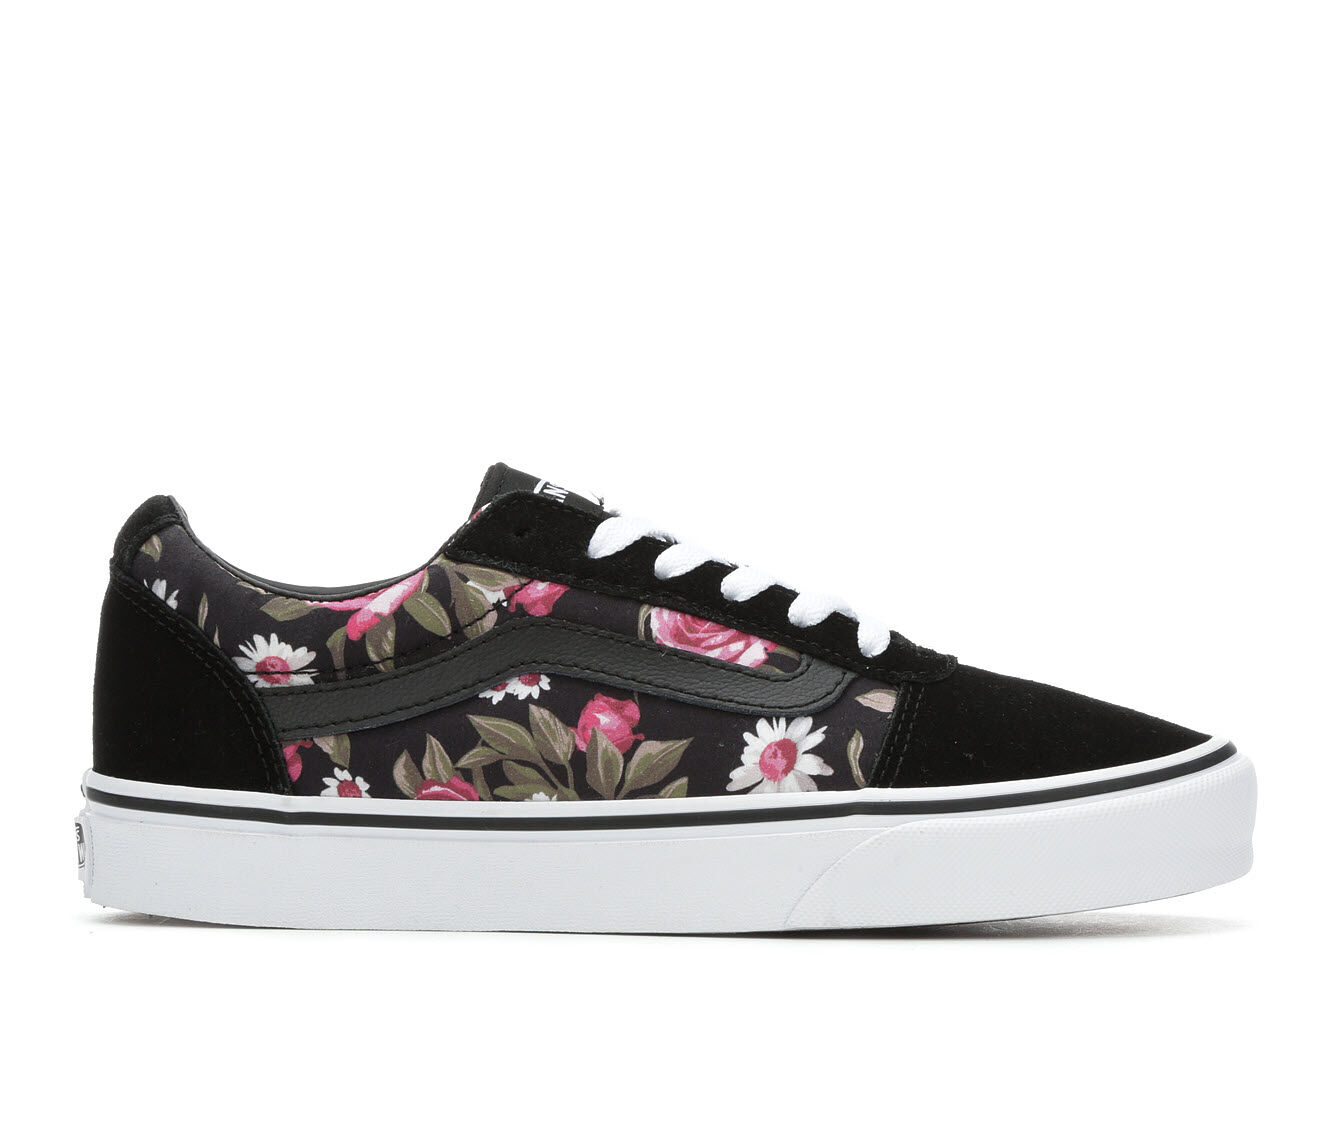 Women's Vans Ward Roses Skate Shoes Black/Pink